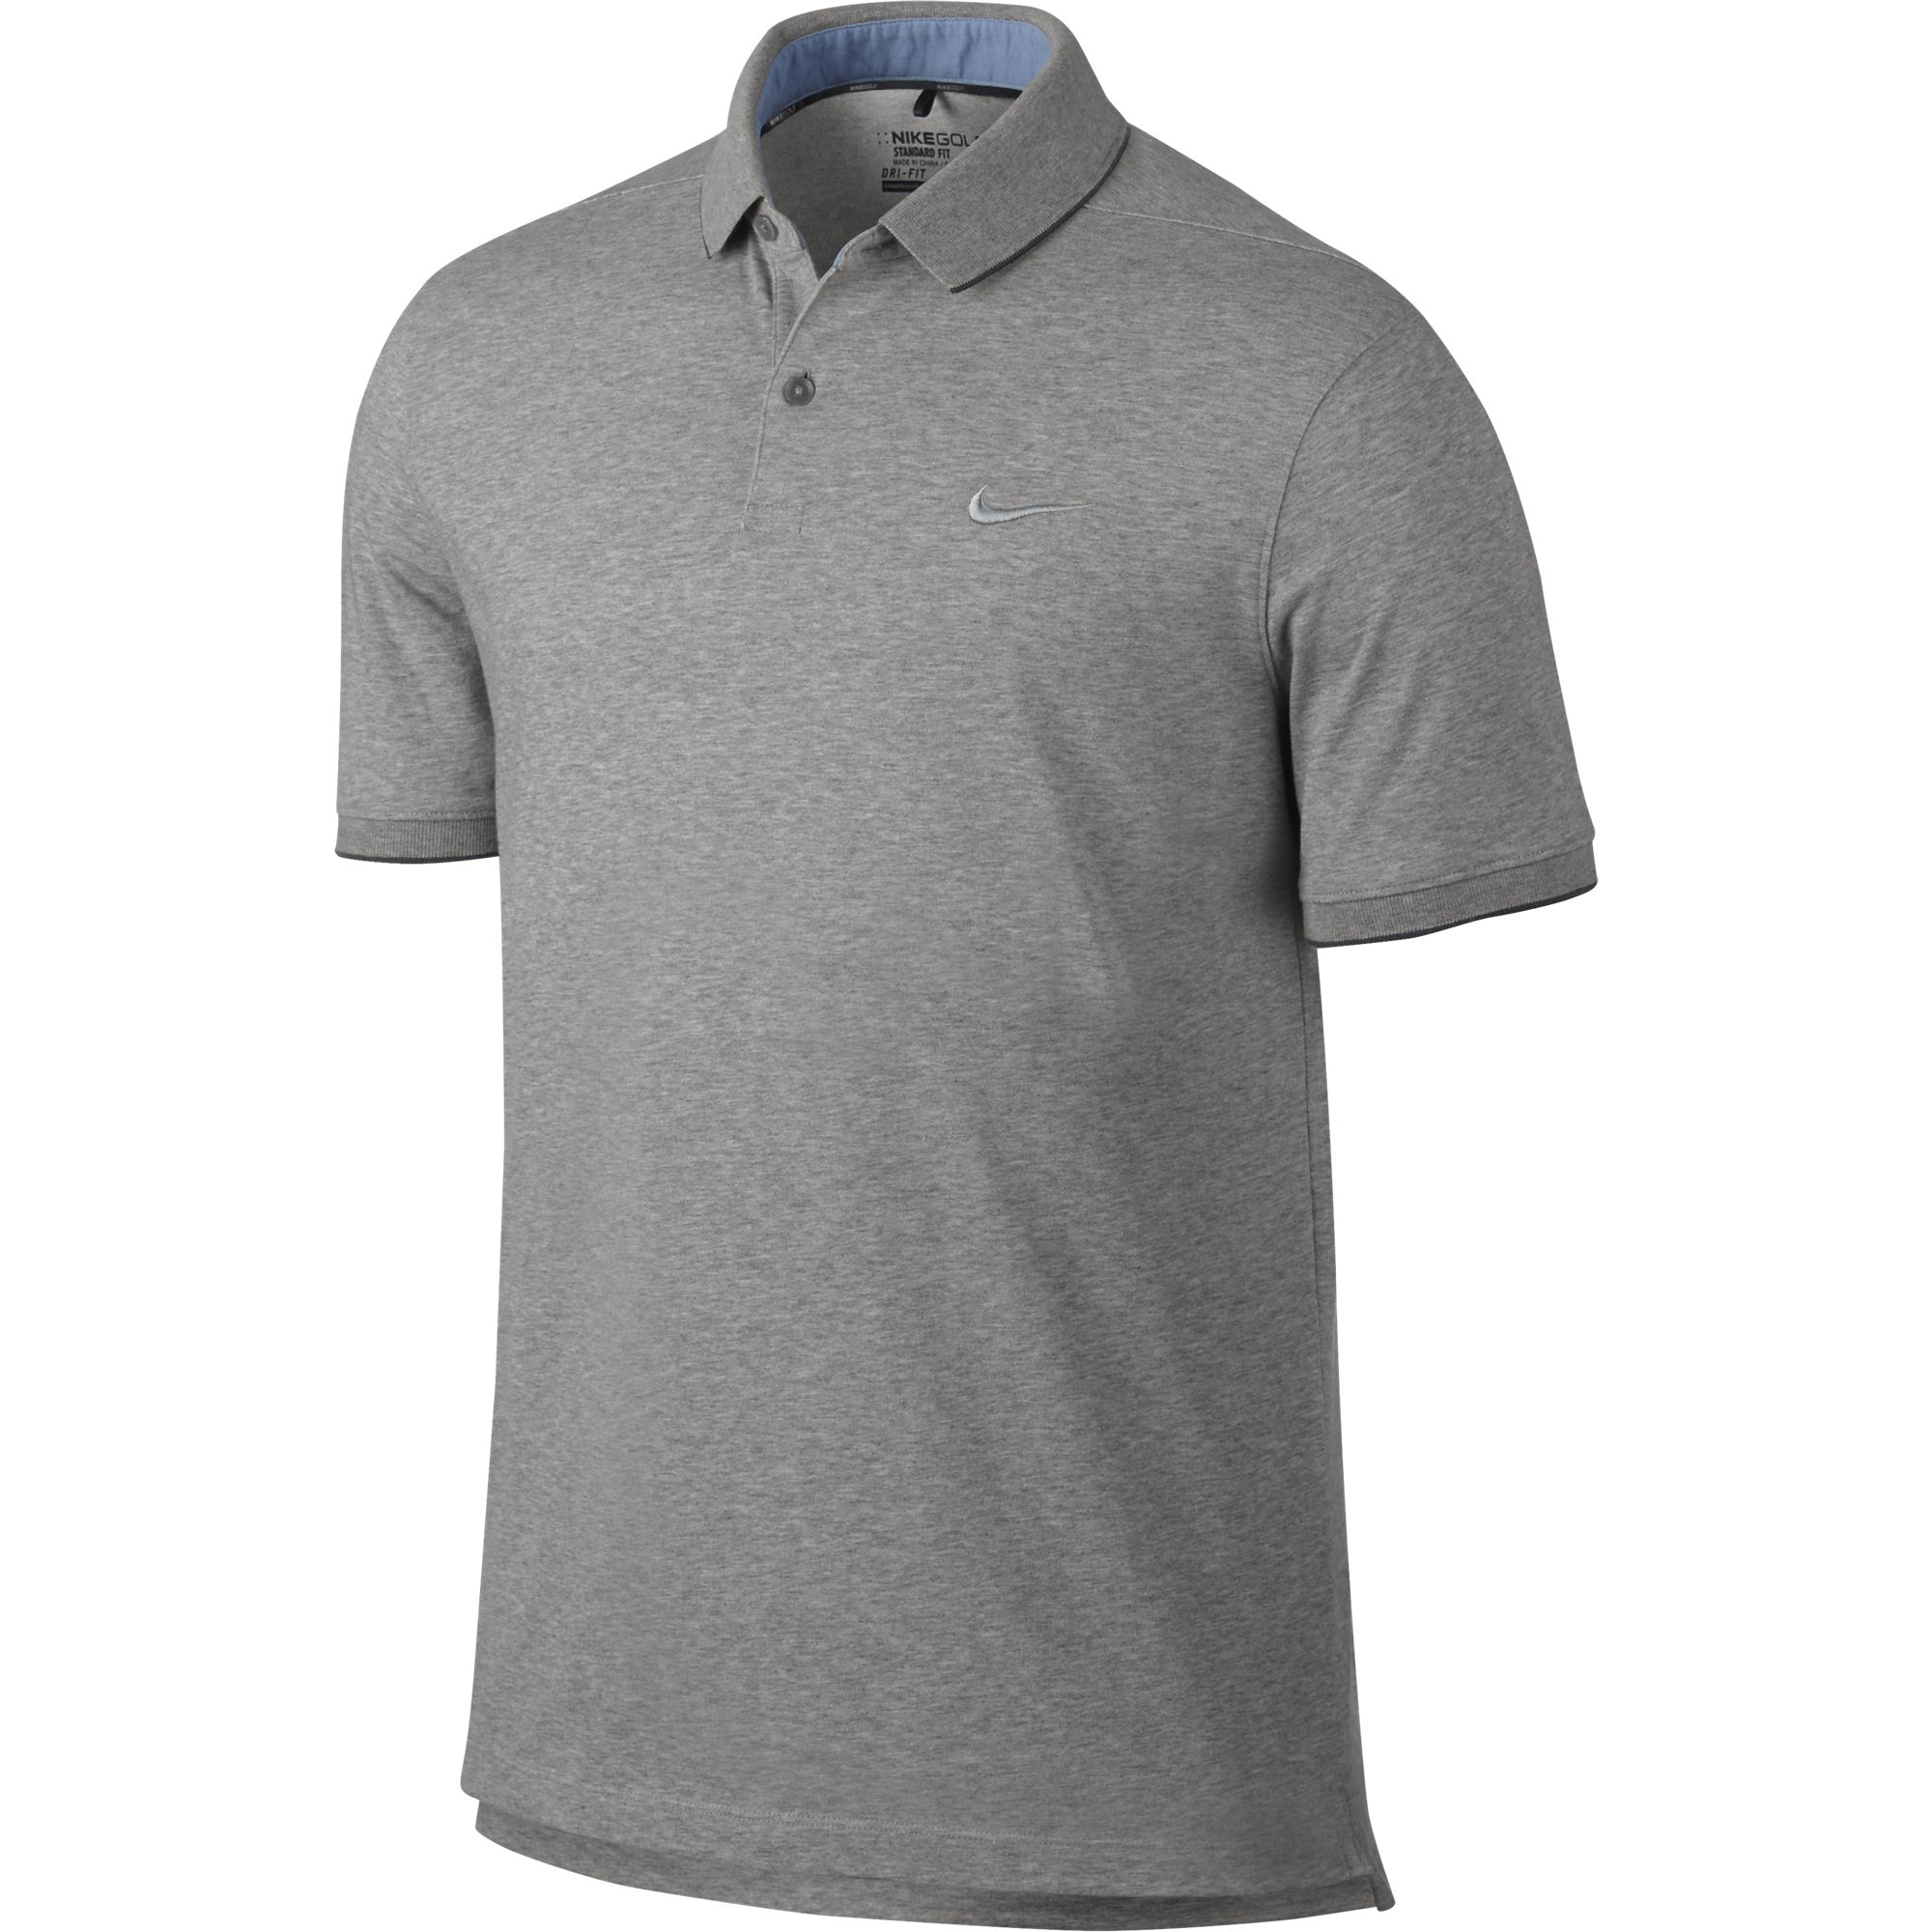 Nike tr dry washed polo mens golf shirt 725545 pick size for Polo golf shirts for men